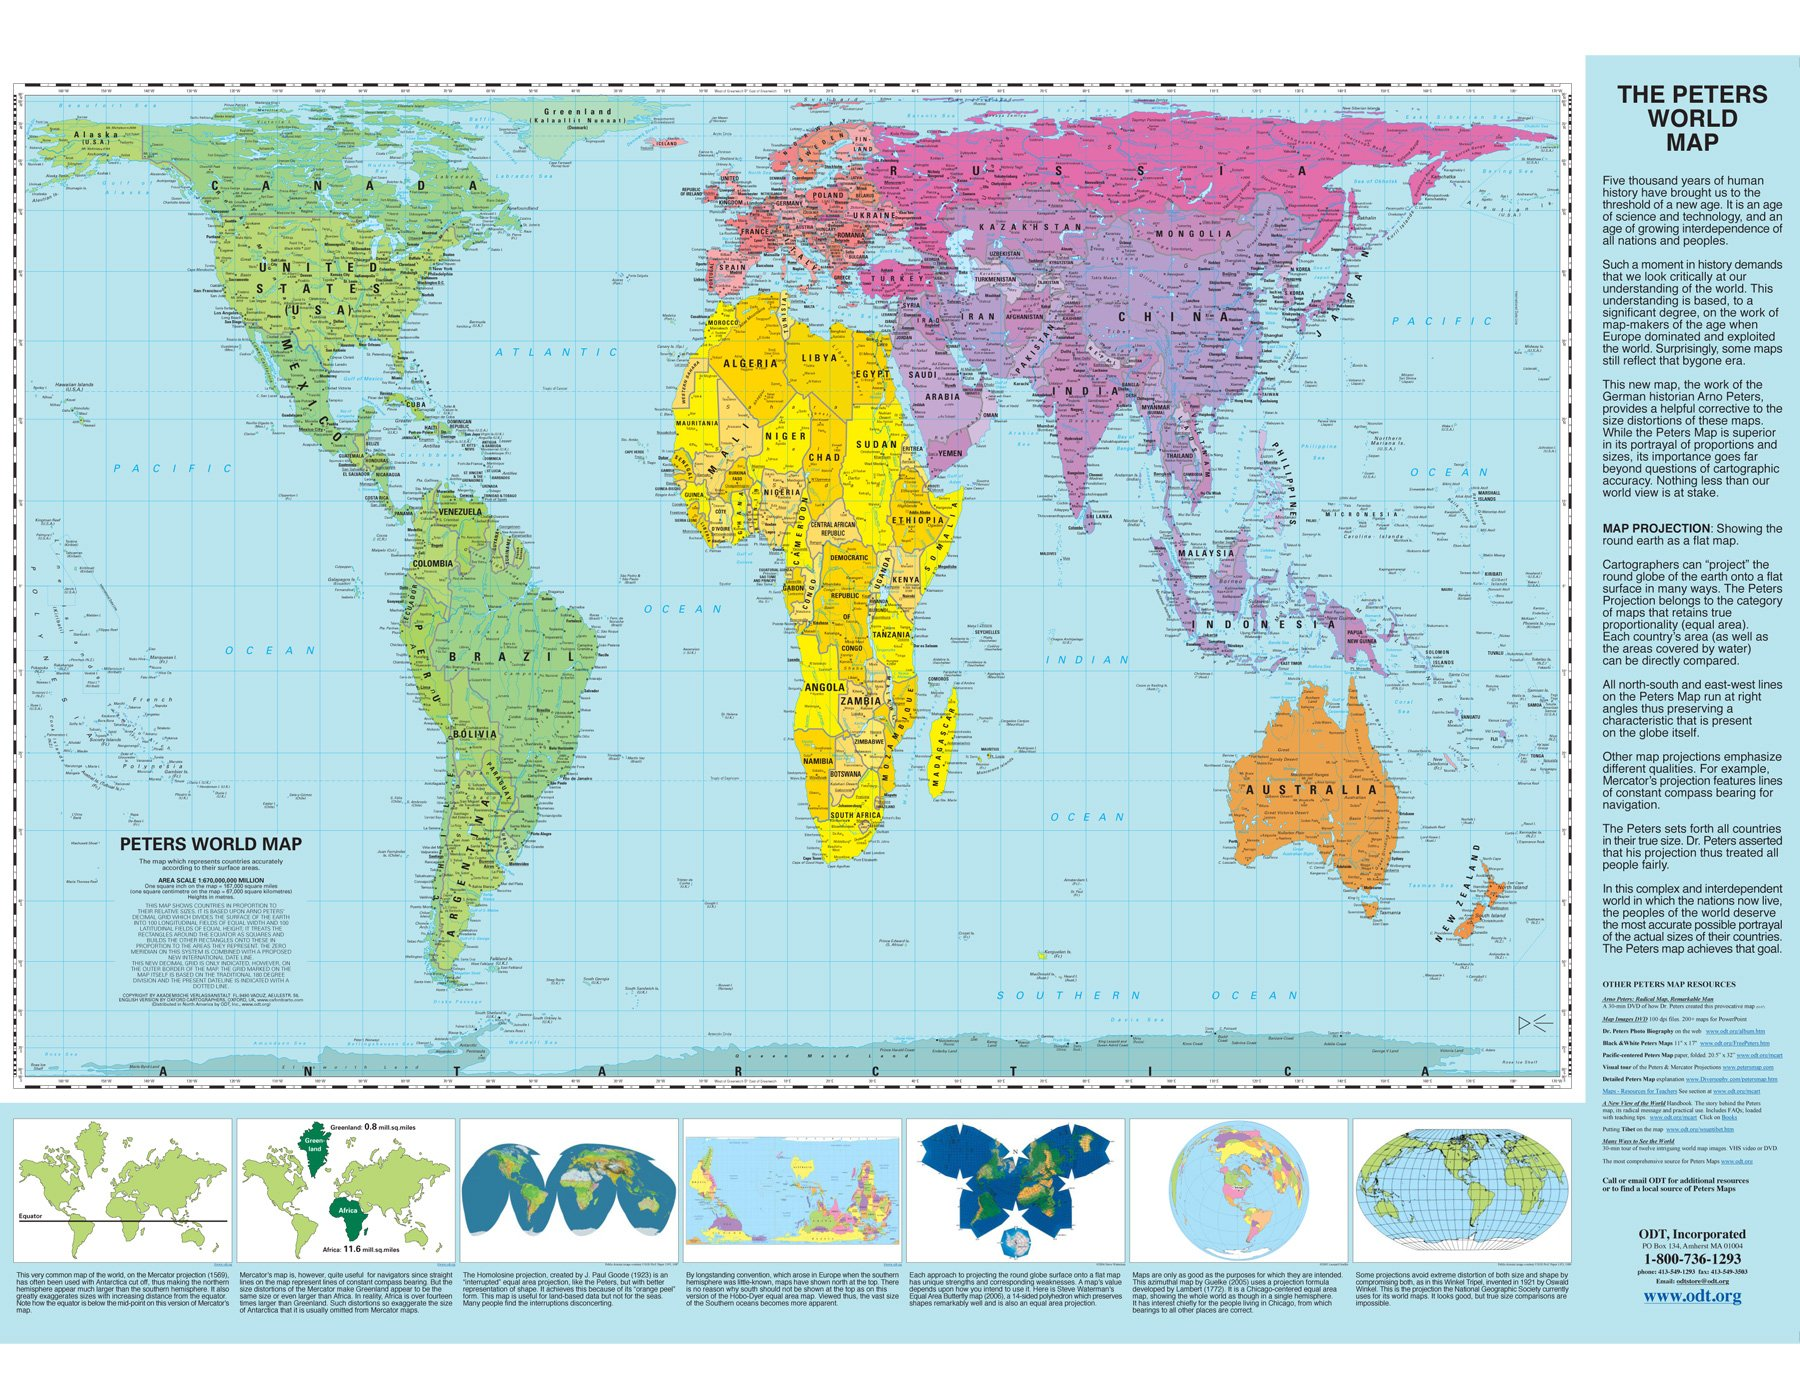 International Date Line On World Map.Peters Projection World Map Laminated Arno Peters Odtmaps Com